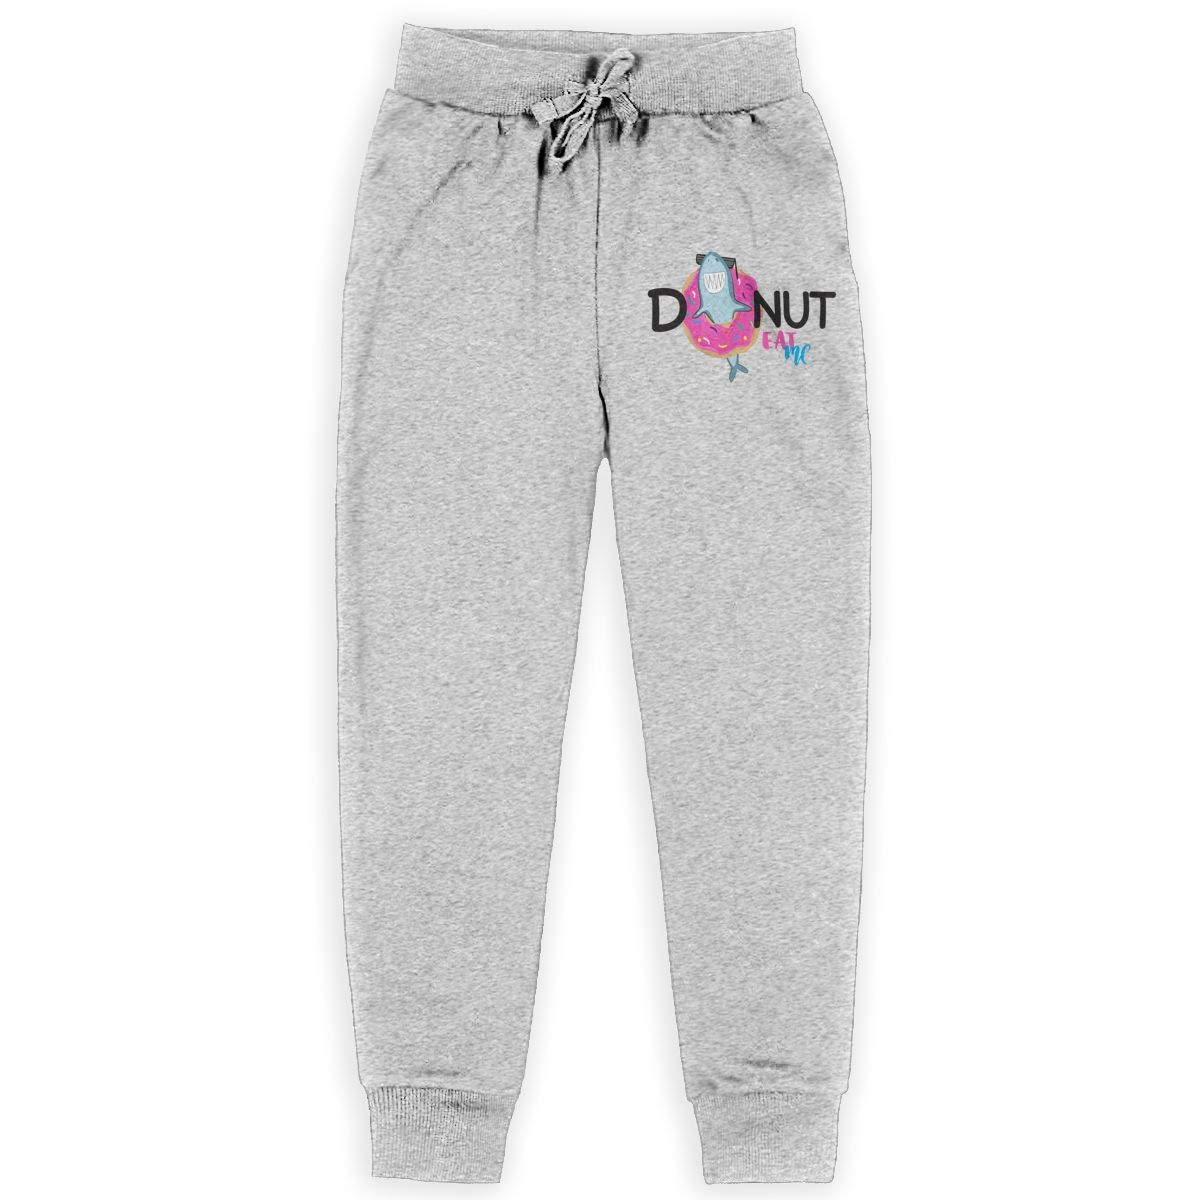 Xinding Youth Fashion Jogger Sweatpants Donut Eat Me Adjustable Waist Trousers with Pocket